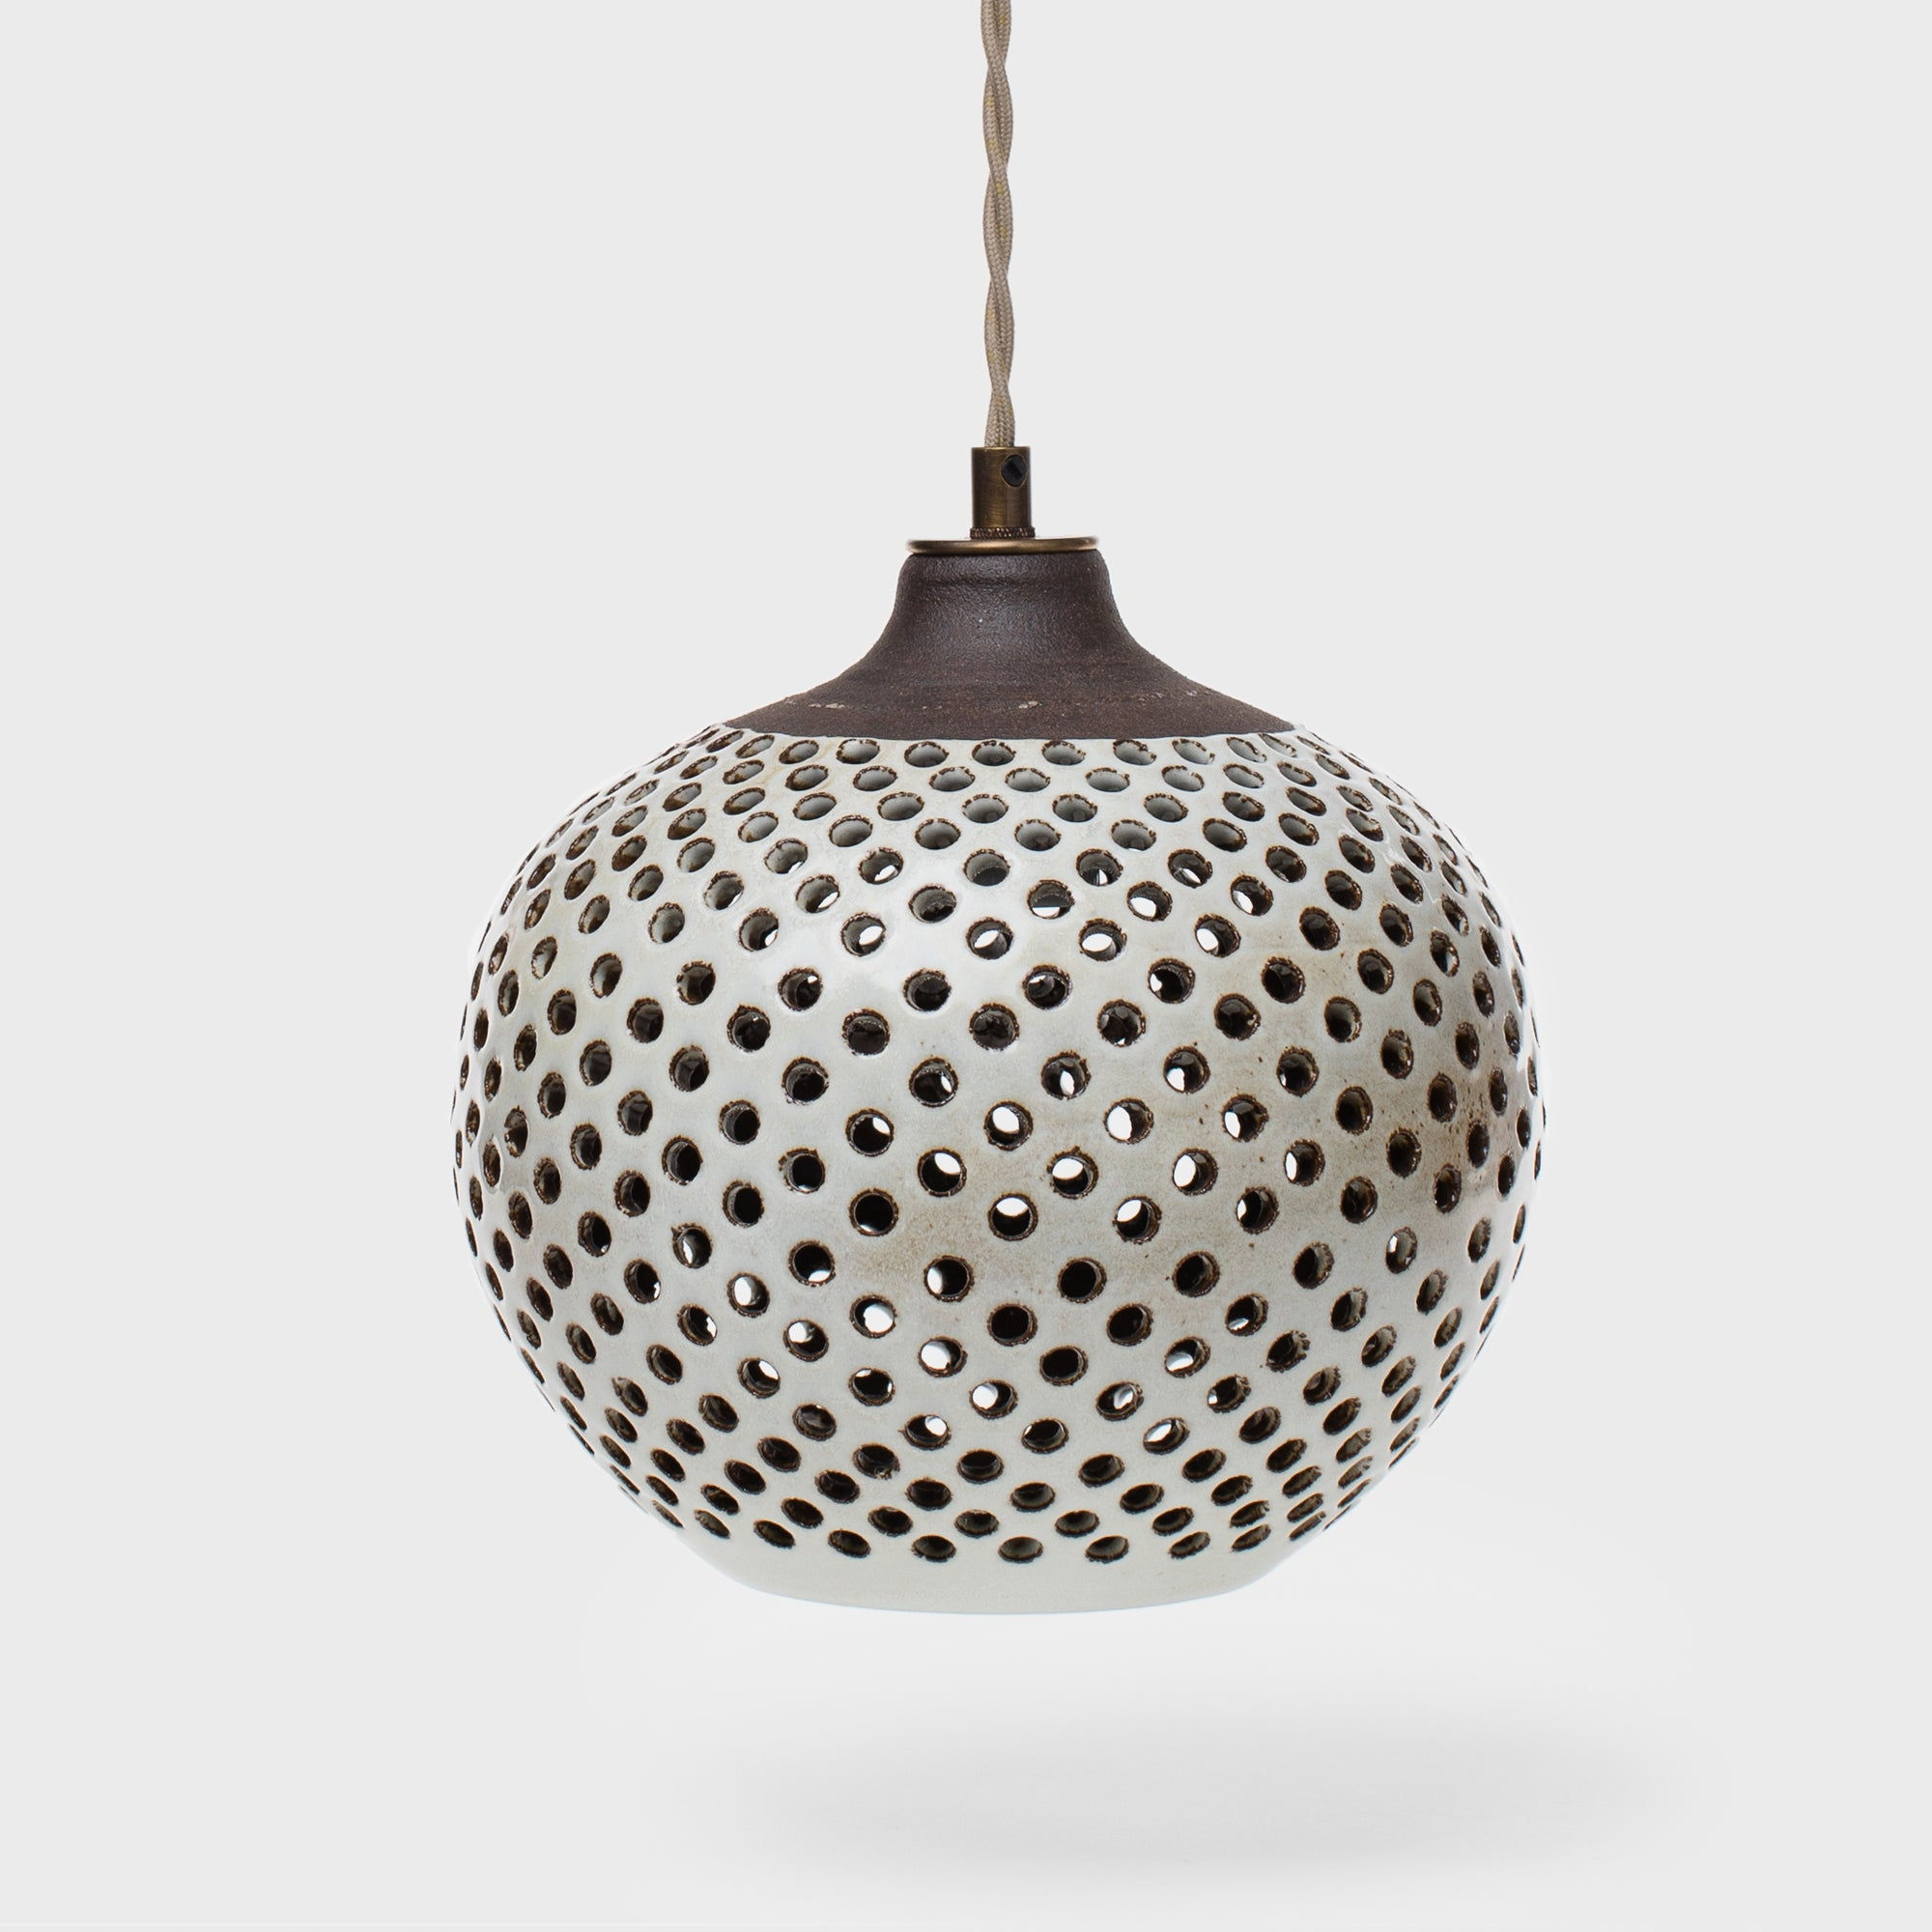 Small Dotted Ceramic Pendant by Heather Levine